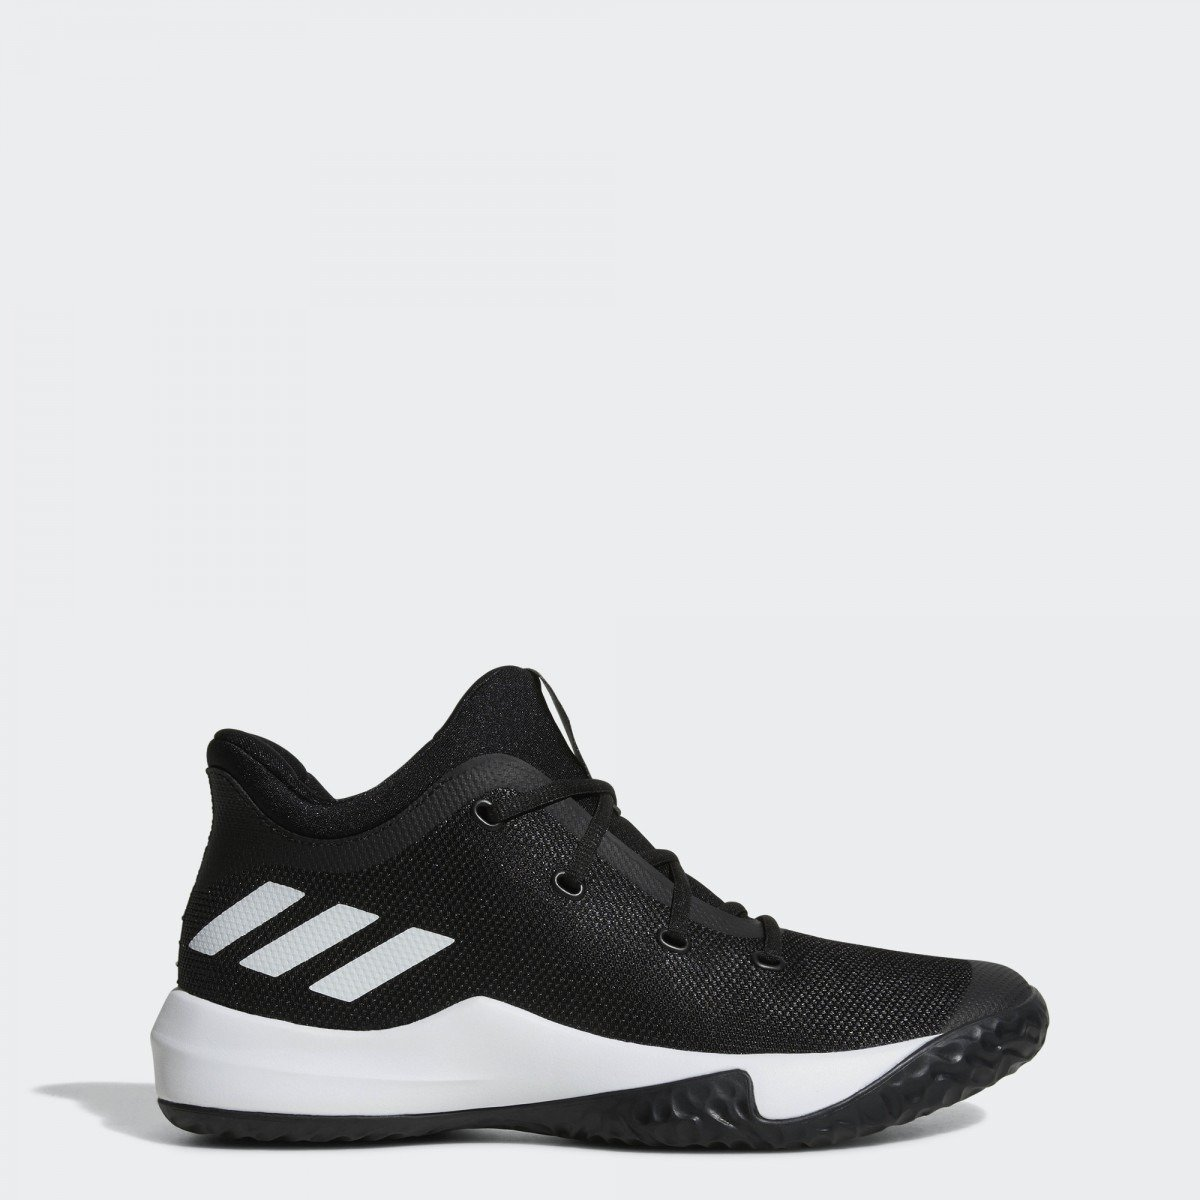 Up CQ0559 Basketball Schuhe 2 Adidas Rise KJclF1